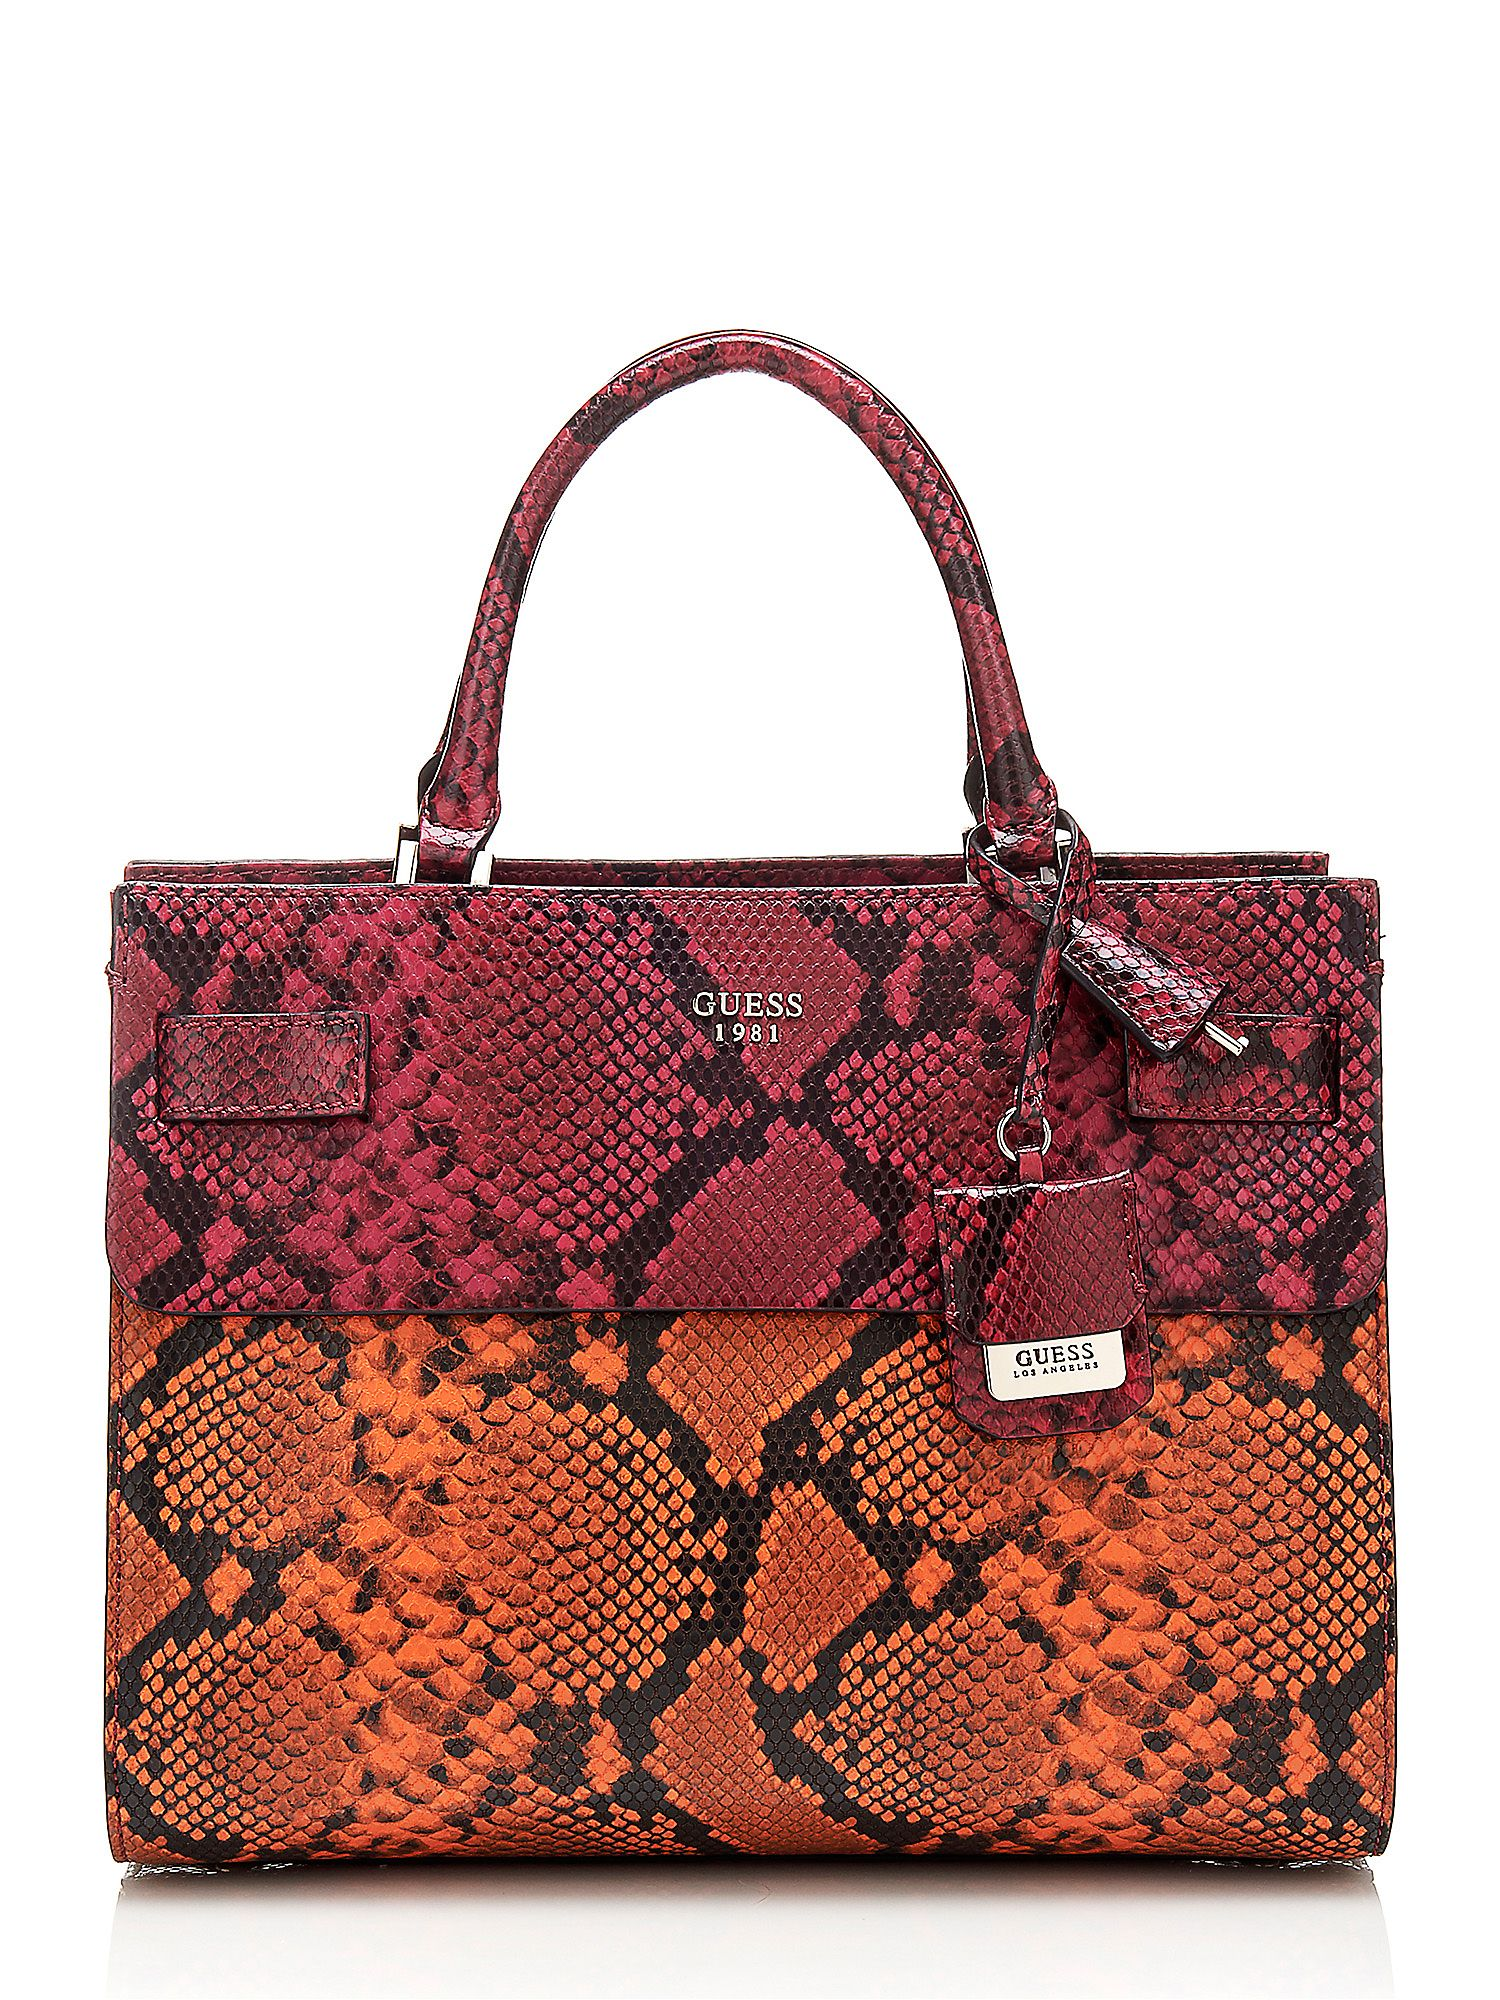 Guess Cate Pyton Print Tote Bag, Lava